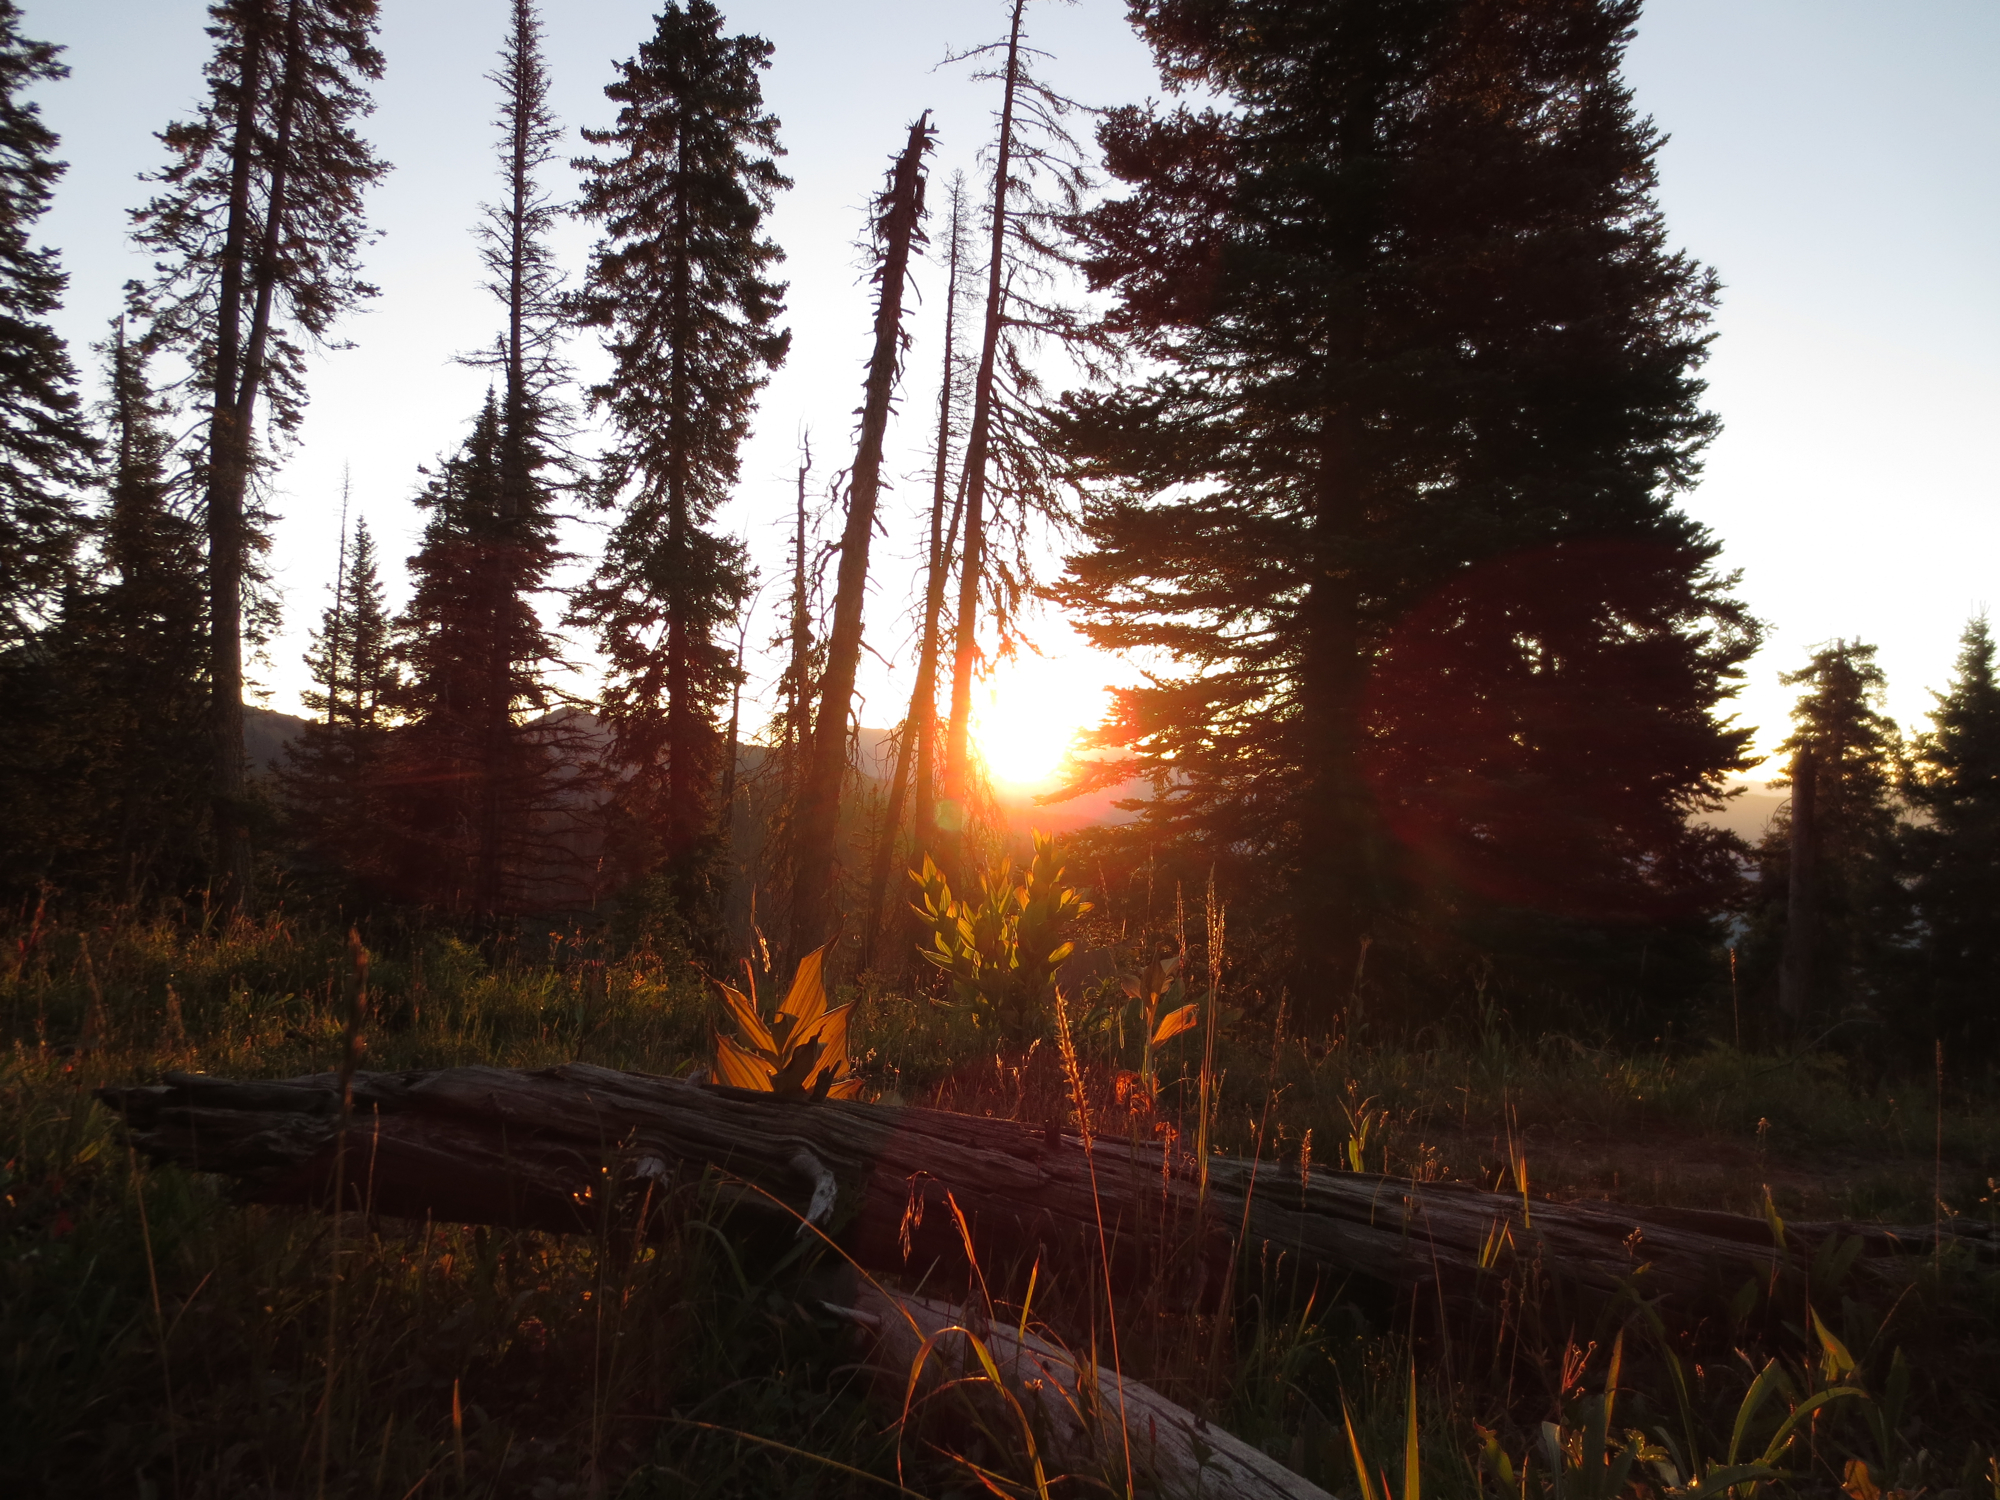 Sunrise from my bivy. It is awfully hard to complain about anything when you awake to this.  Sometime during the night, a feline creature walked right by my spot - there were fresh tracks over top my tire tracks from the night before. Probably was just a lynx or bobcat, but it could have been a small mountain lion!